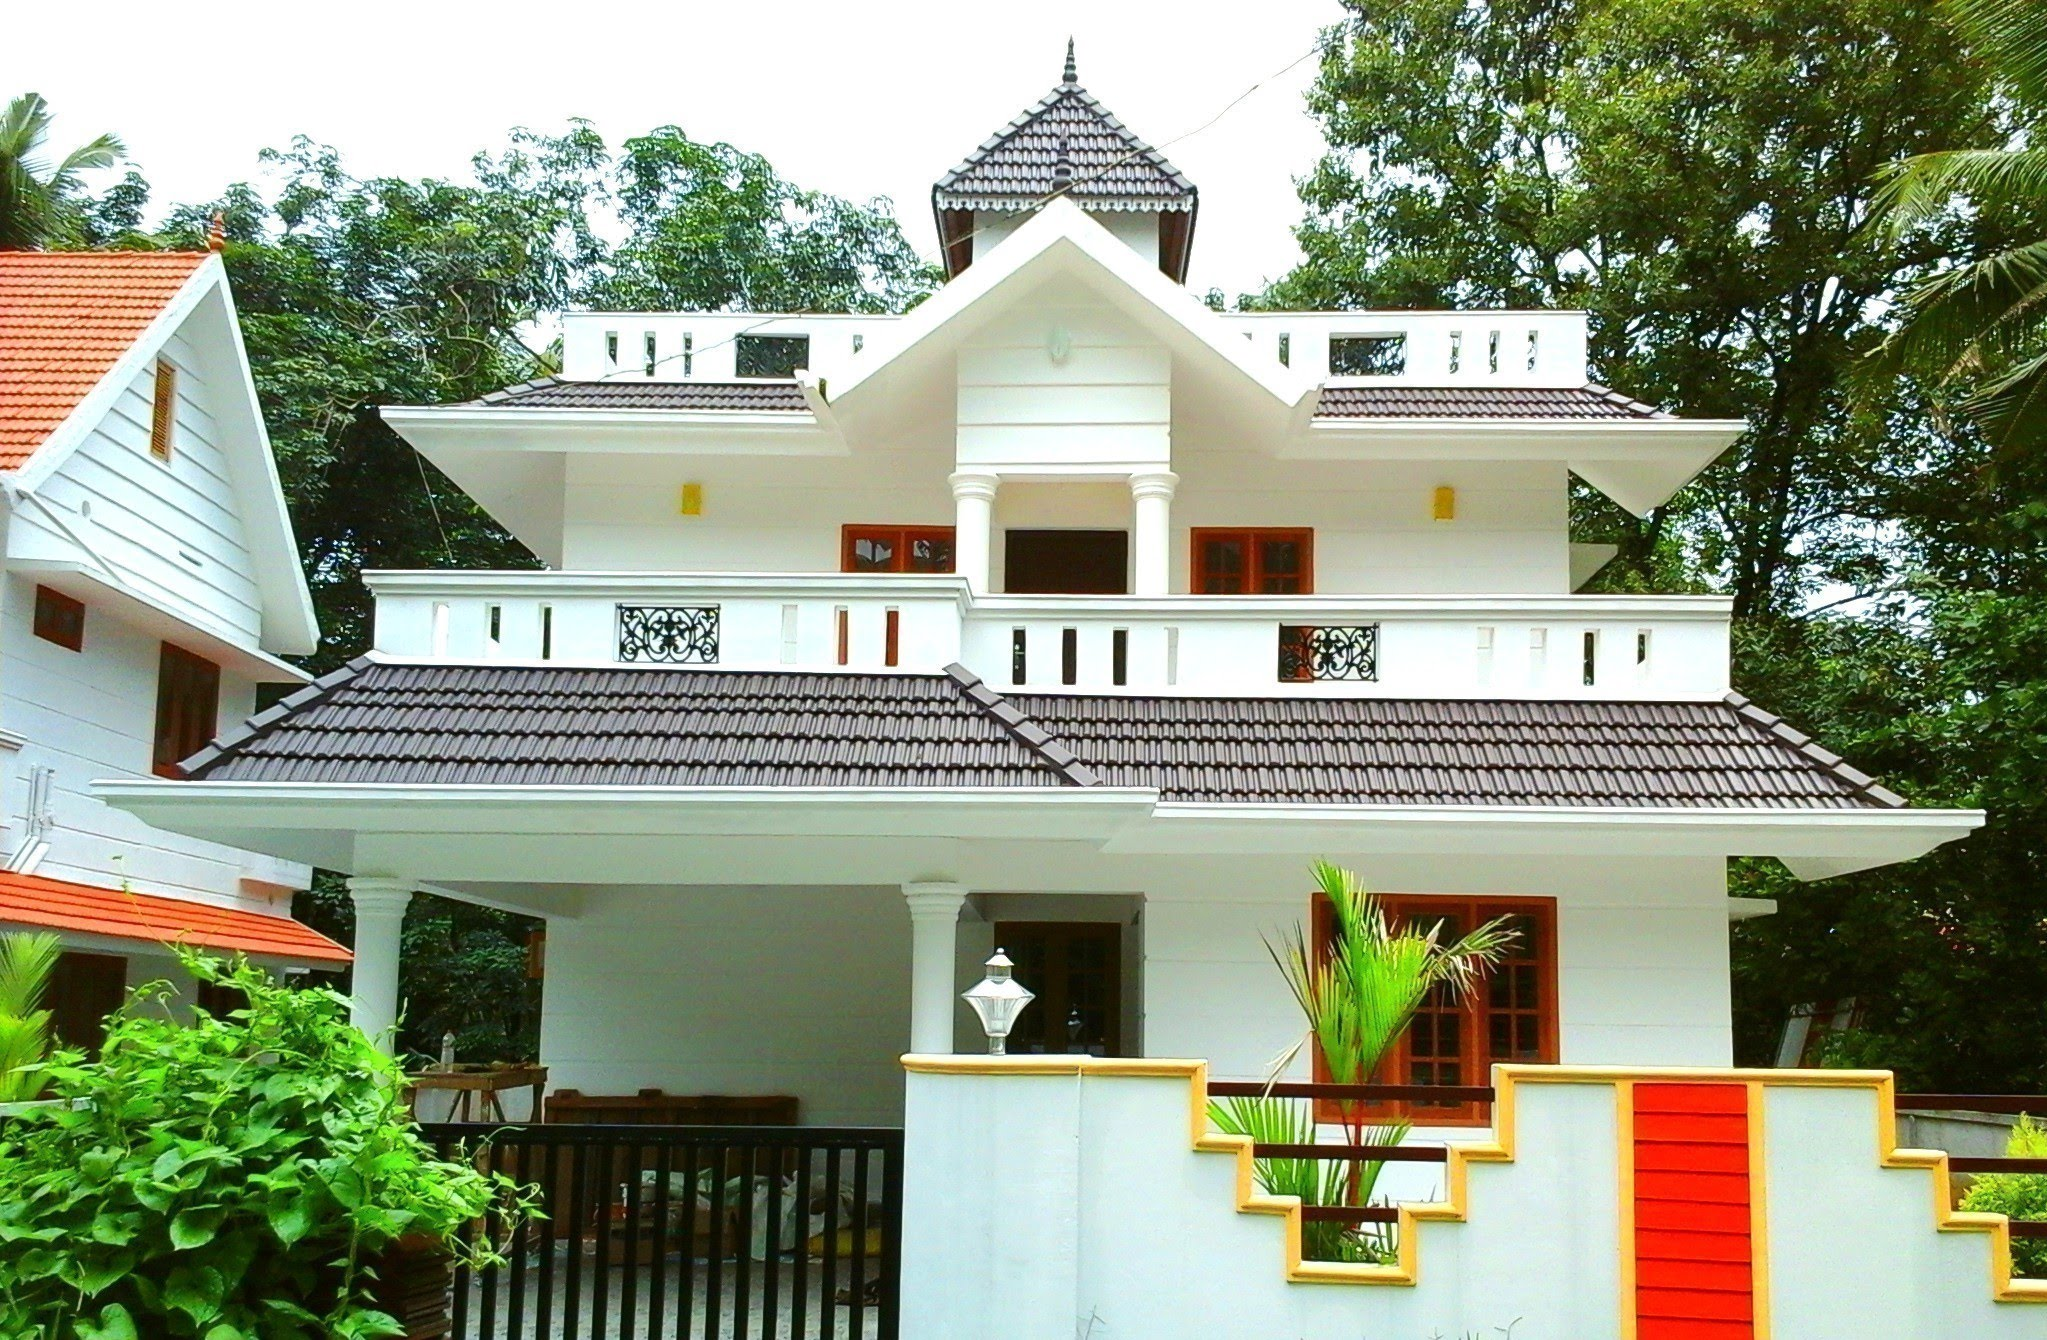 Understanding a traditional kerala styled house design for Home design 4u kerala